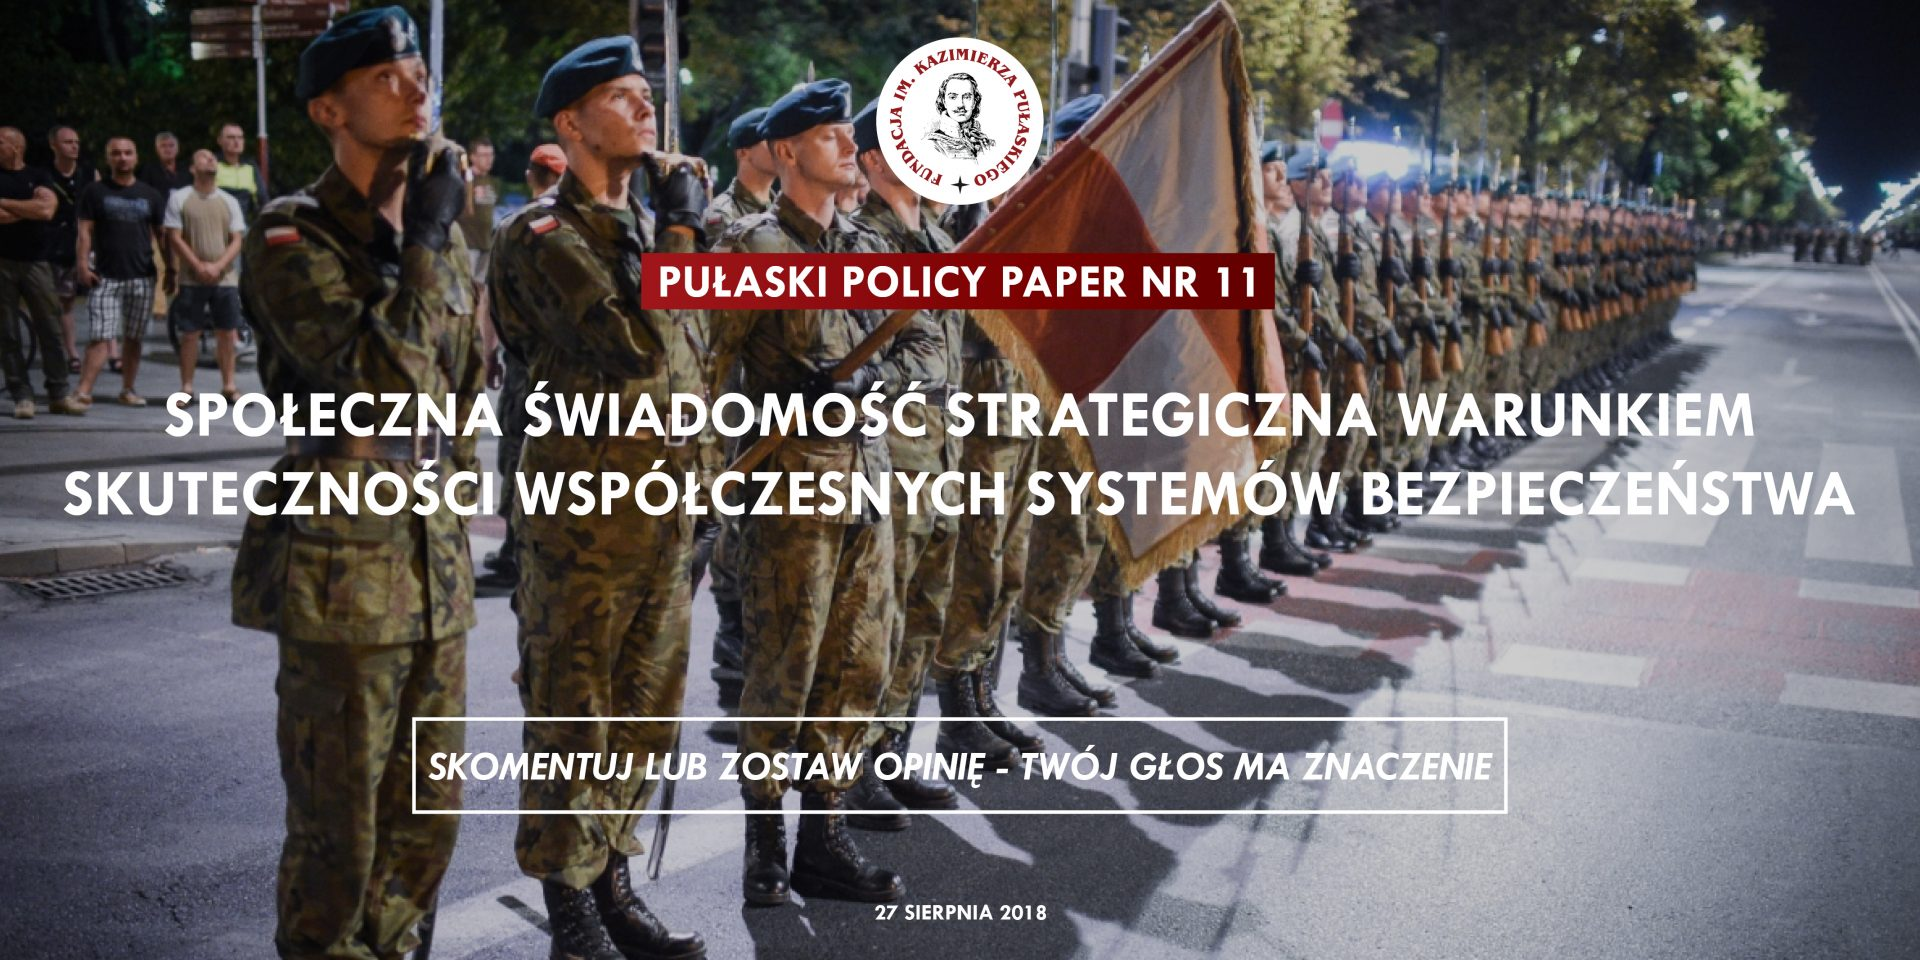 PULASKI POLICY PAPER – S. Koziej: Social awareness is necessary for effective modern security systems